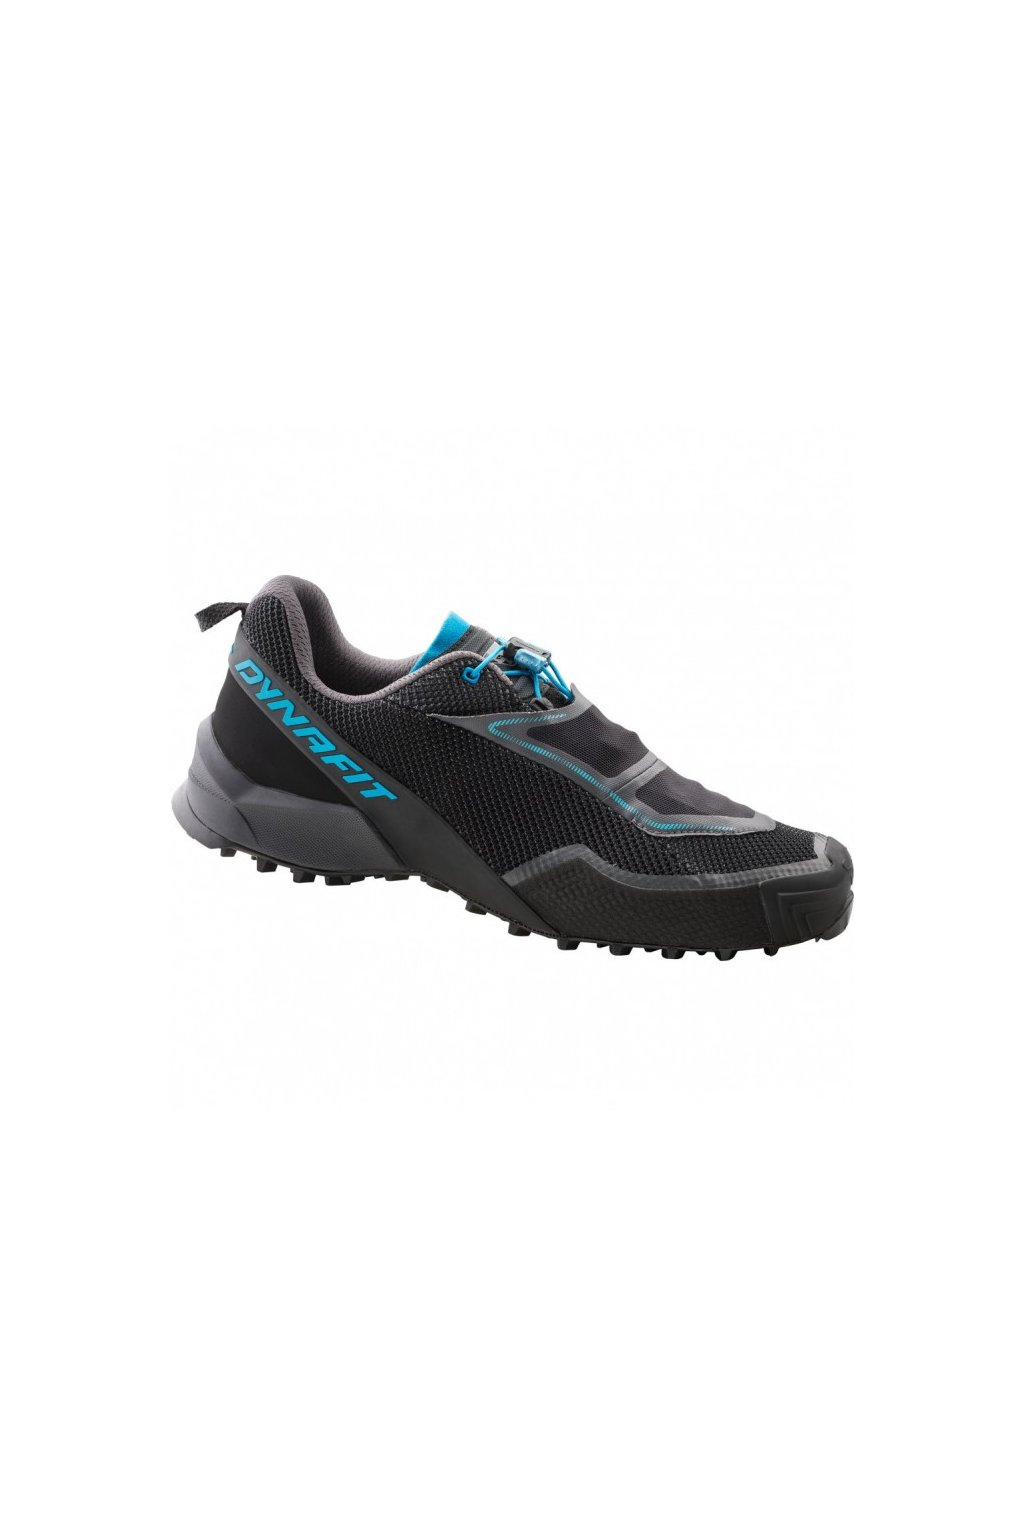 DYNAFIT SPEED MTN black/methyl blue